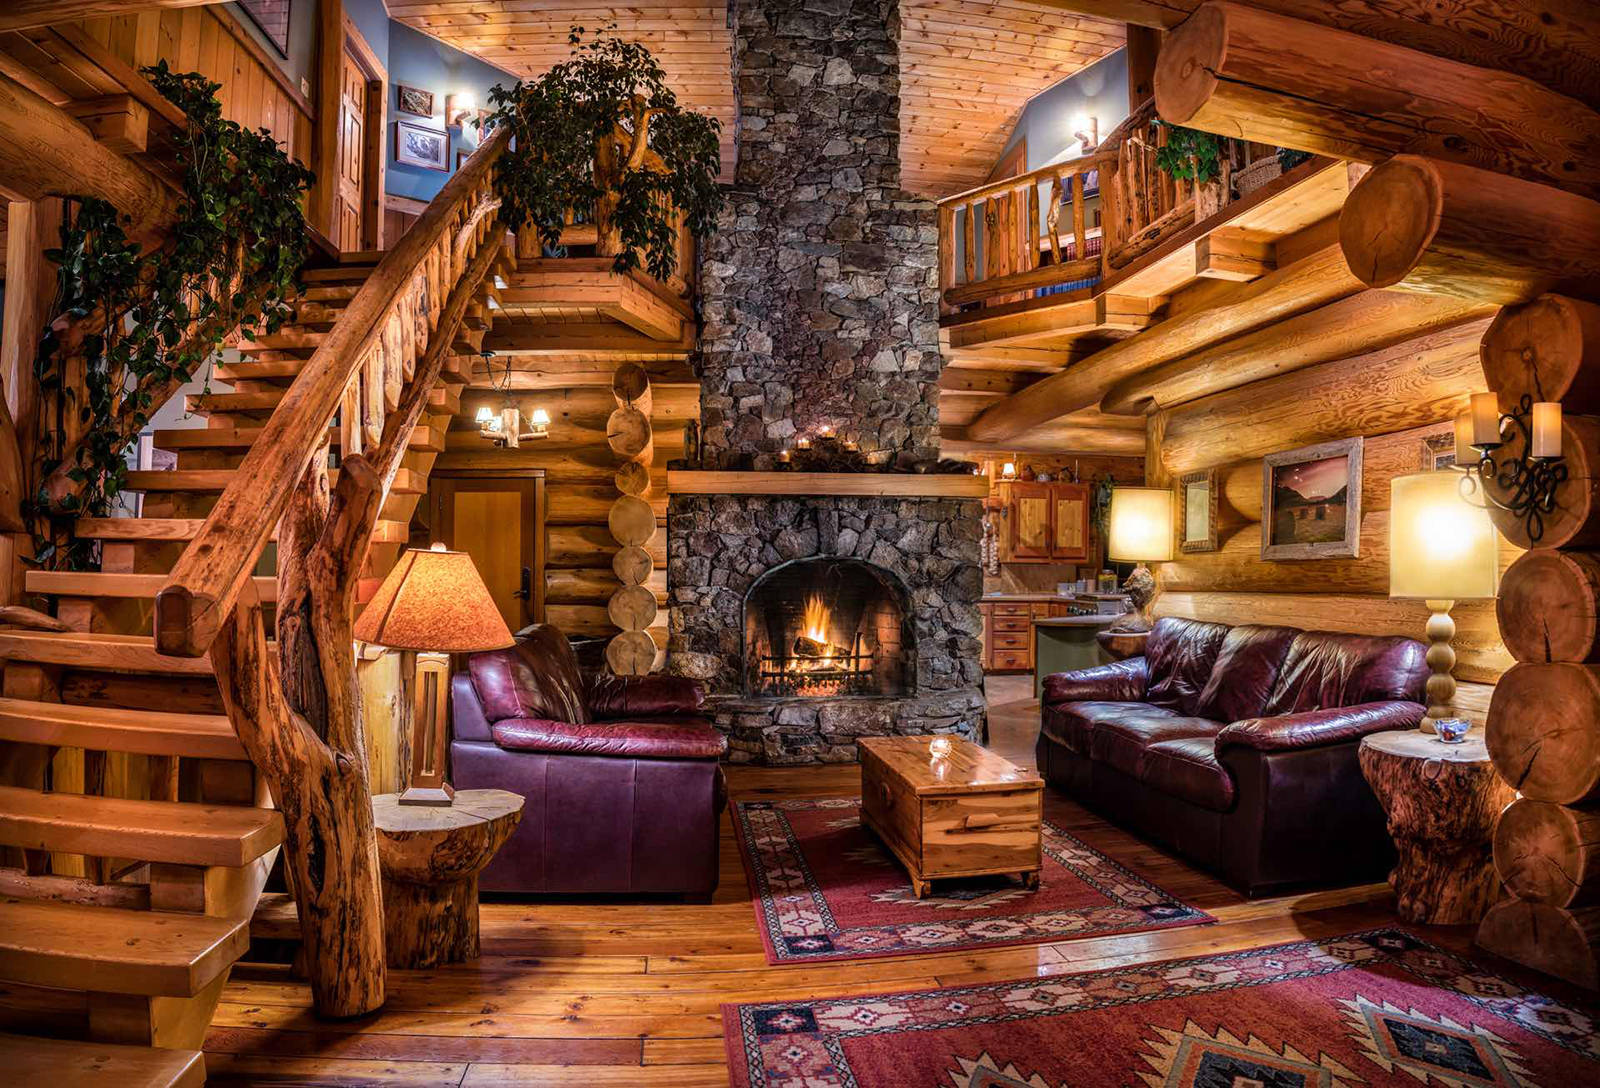 A stay at the White Saddle Country Inn is part of a stellar prize package inspired by the History Channel's <em>Alone</em> series.